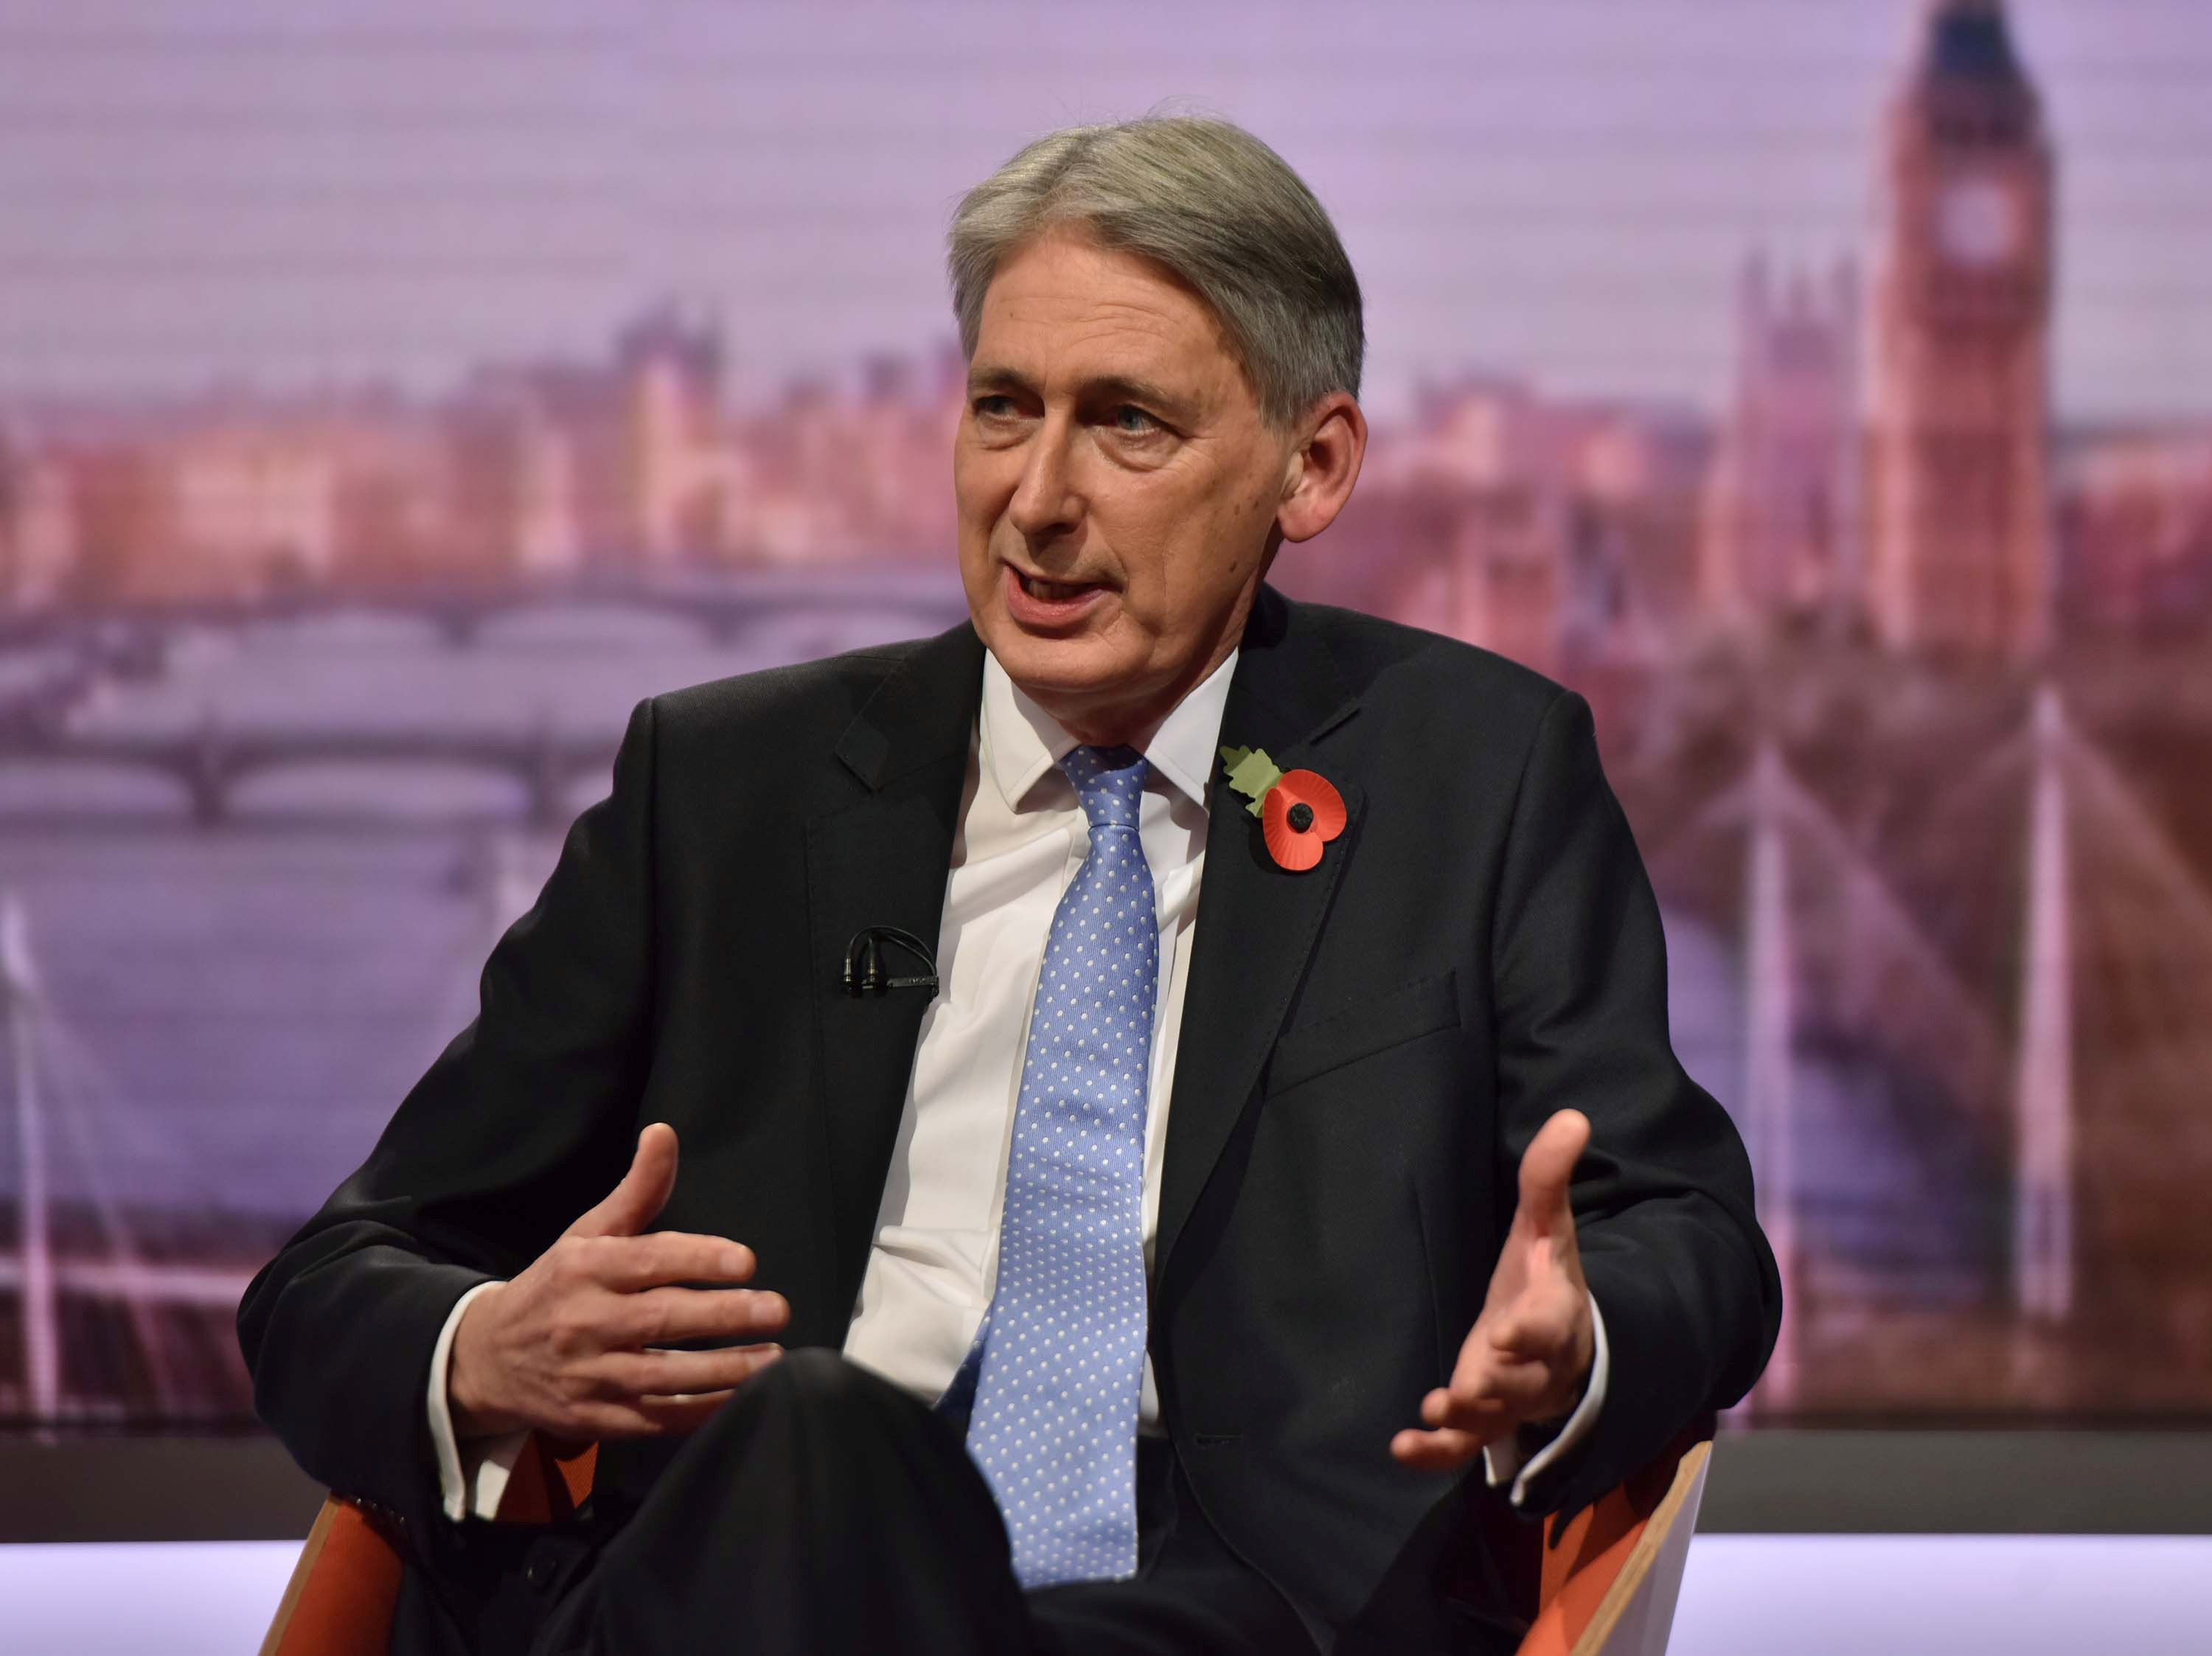 UK Would Be Forced To Drop Budget Plans In Case Of No Deal Brexit, Chancellor